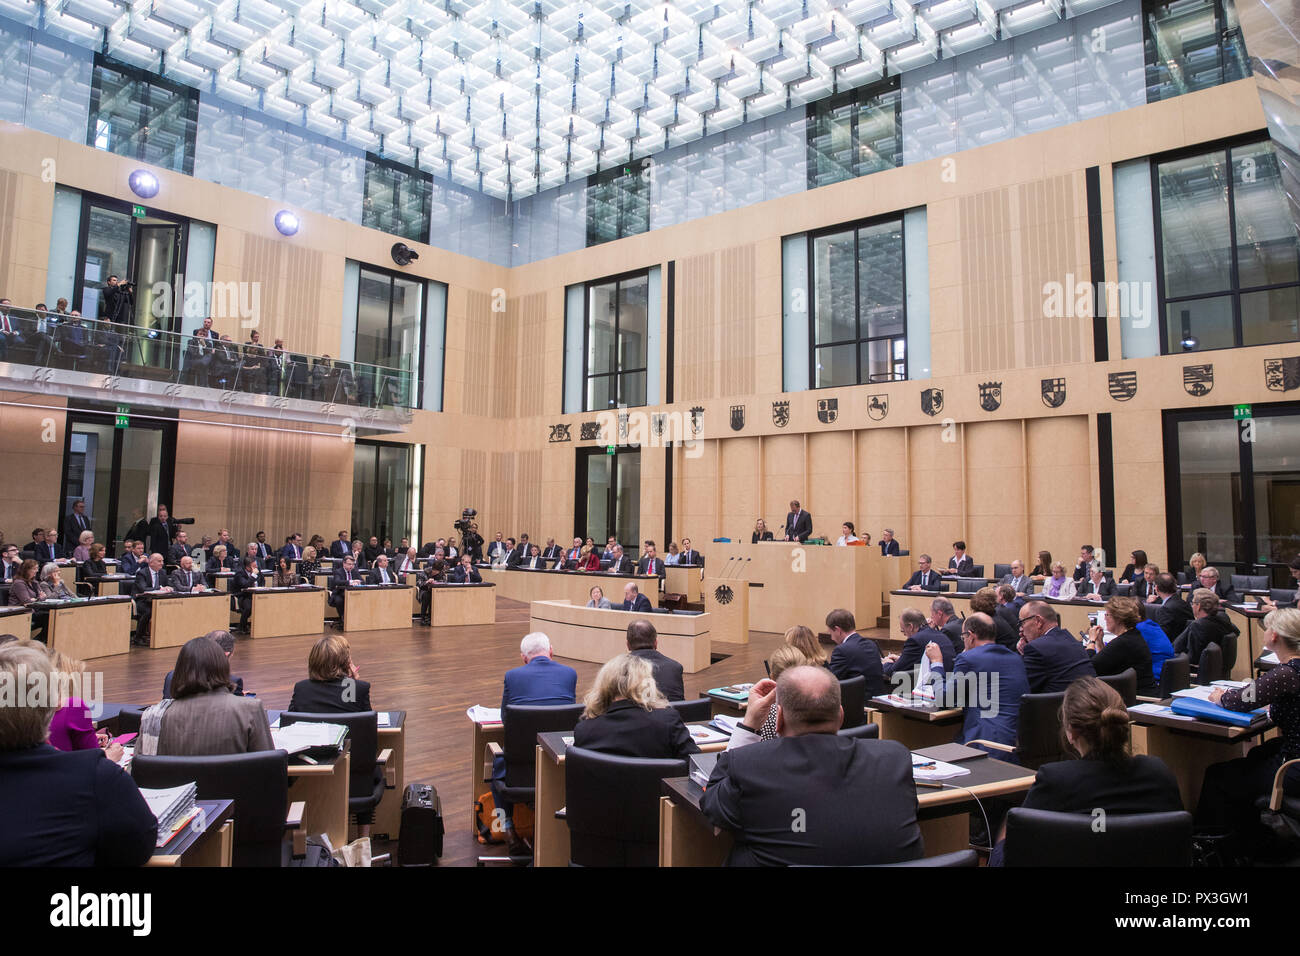 Berlin, Germany. 19th Oct, 2018. Michael Müller (SPD), Governing Mayor of Berlin, addresses the Bundesrat before handing over the presidency. The Upper House (Bundesrat) is also dealing with the grand coalition's plans for legislation on kindergarten quality, pension stabilization, and affordable rental housing. Credit: Jens Büttner/dpa-Zentralbild/dpa/Alamy Live News - Stock Image